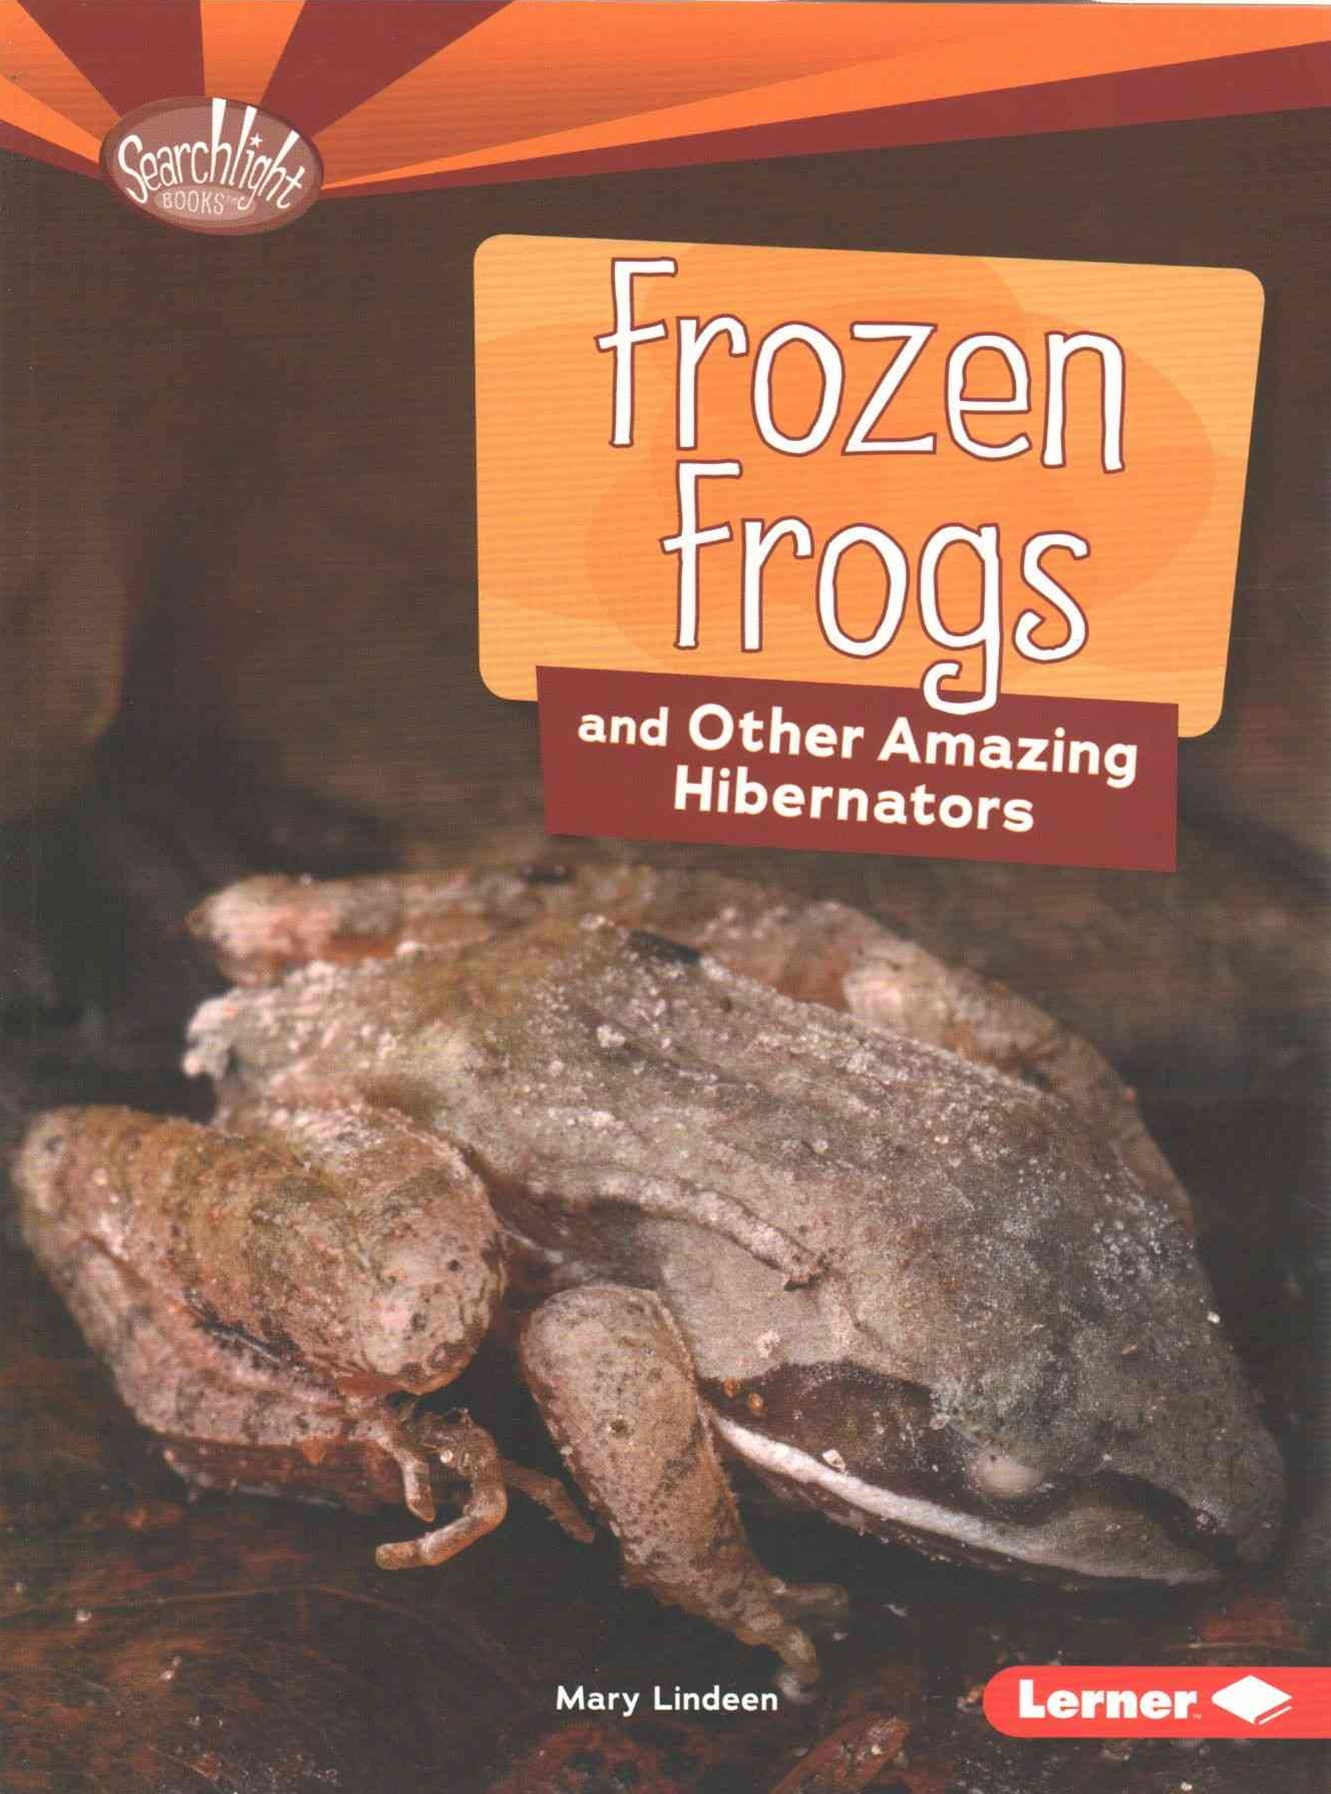 Frozen Frogs and Other Amazing Hibernators - Searchlight Animal Superpowers